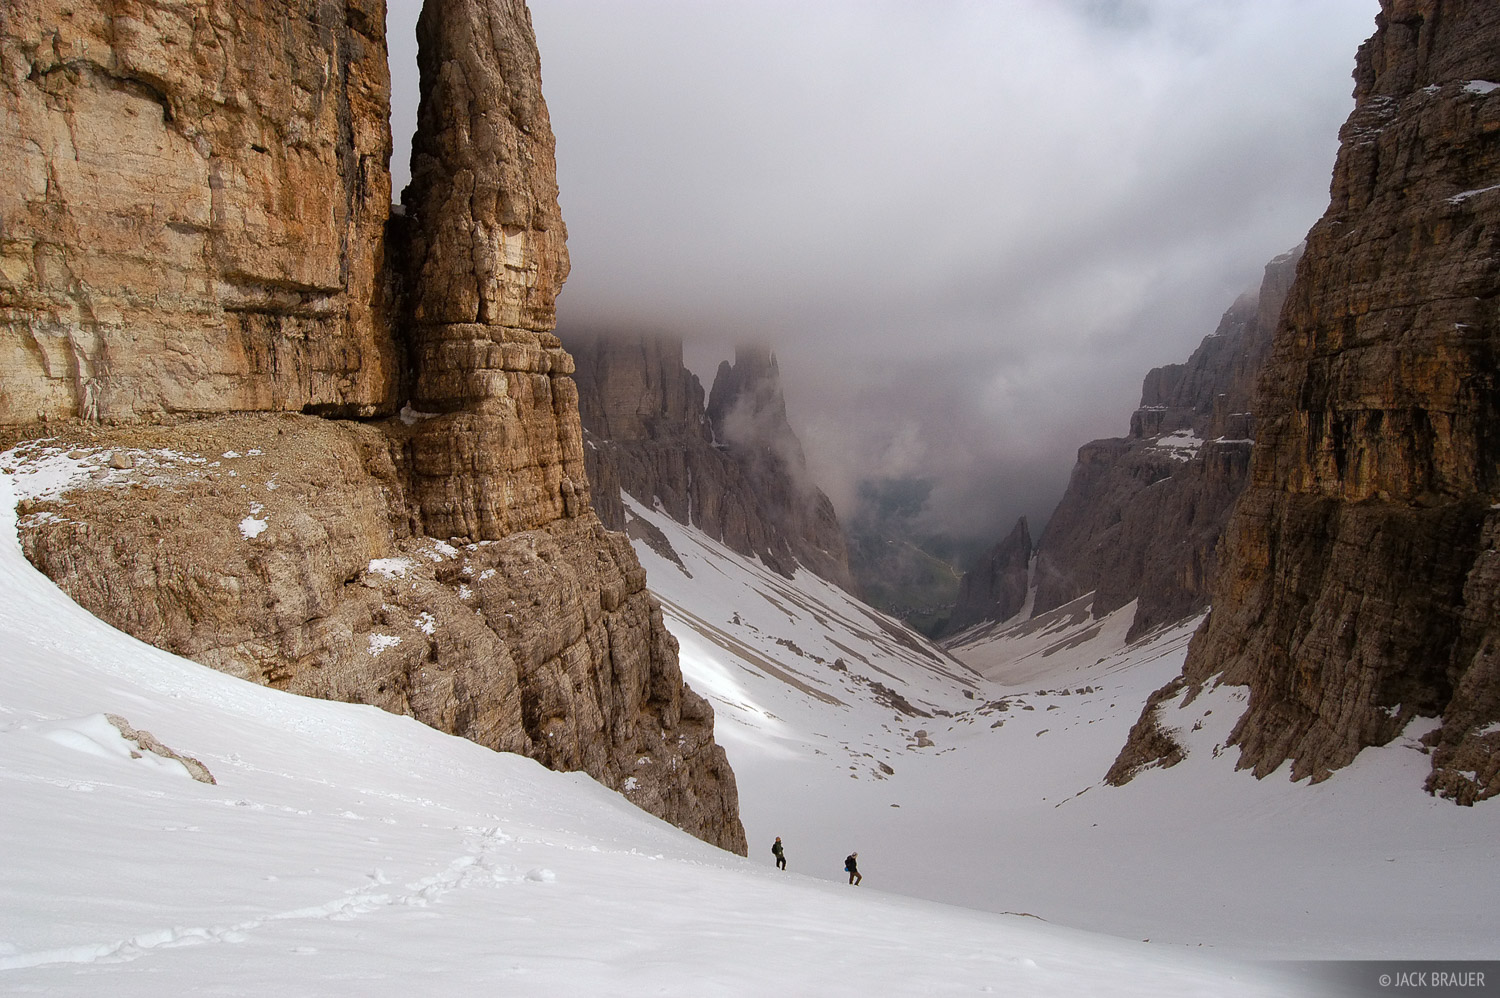 Val de Mesdi, Sella group, Corvara, Dolomites, Italy, photo